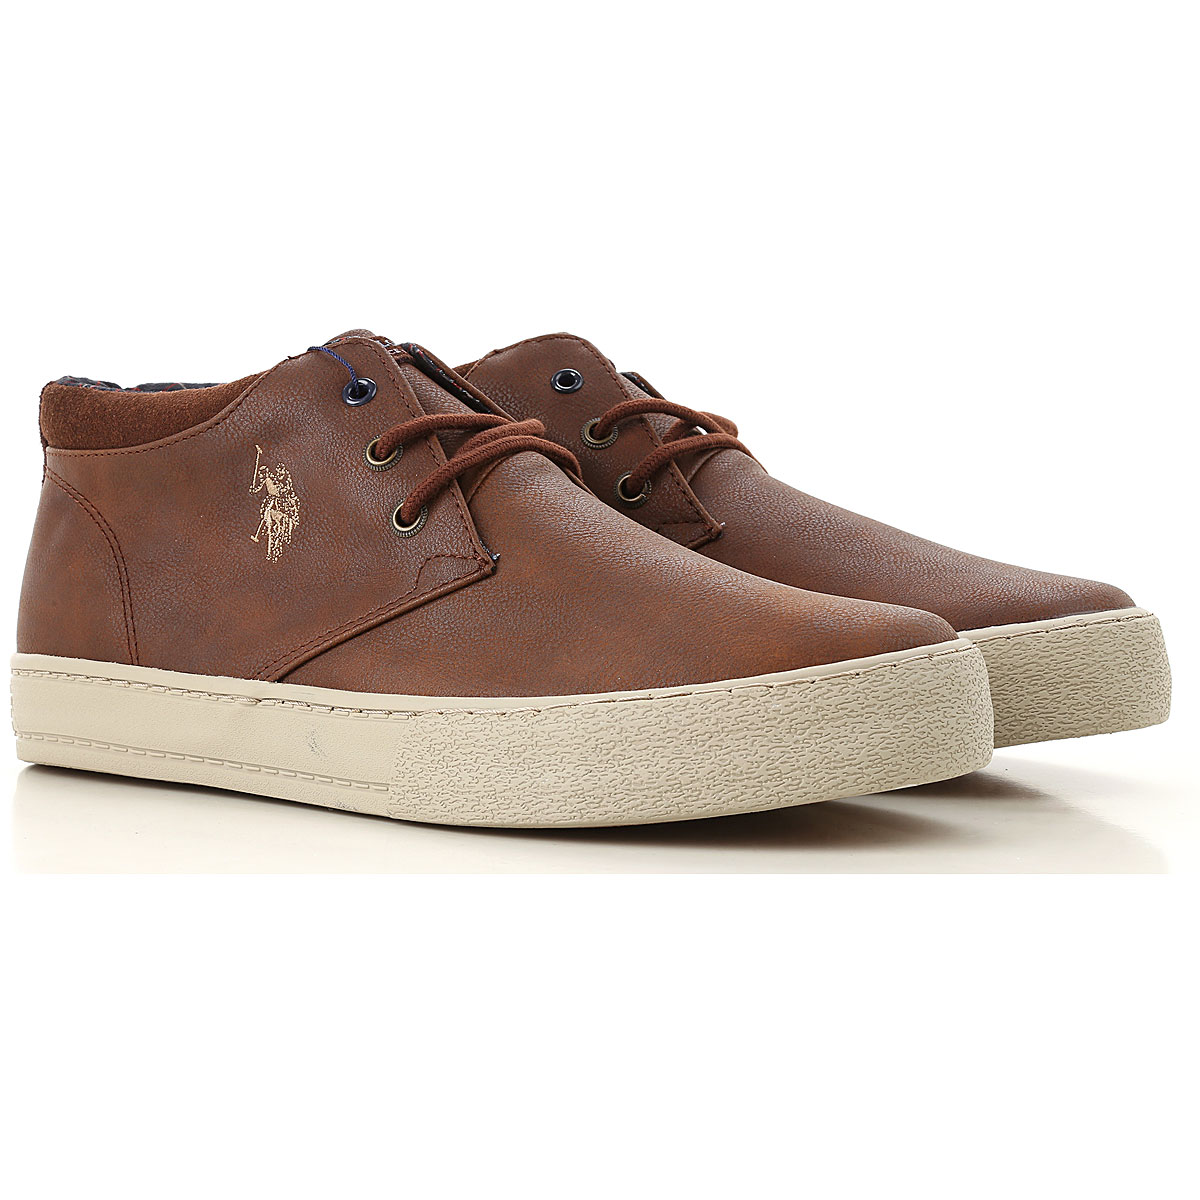 Image of U.S. Polo Sneakers for Men, Leather Brown, Leather, 2017, UK 6 - EUR 40 - US 7 UK 7 - EUR 41 - US 8 UK 8 - EUR 42 - US 9 UK 9 - EUR 43 - US 10 UK 10 - EUR 44 - US 11